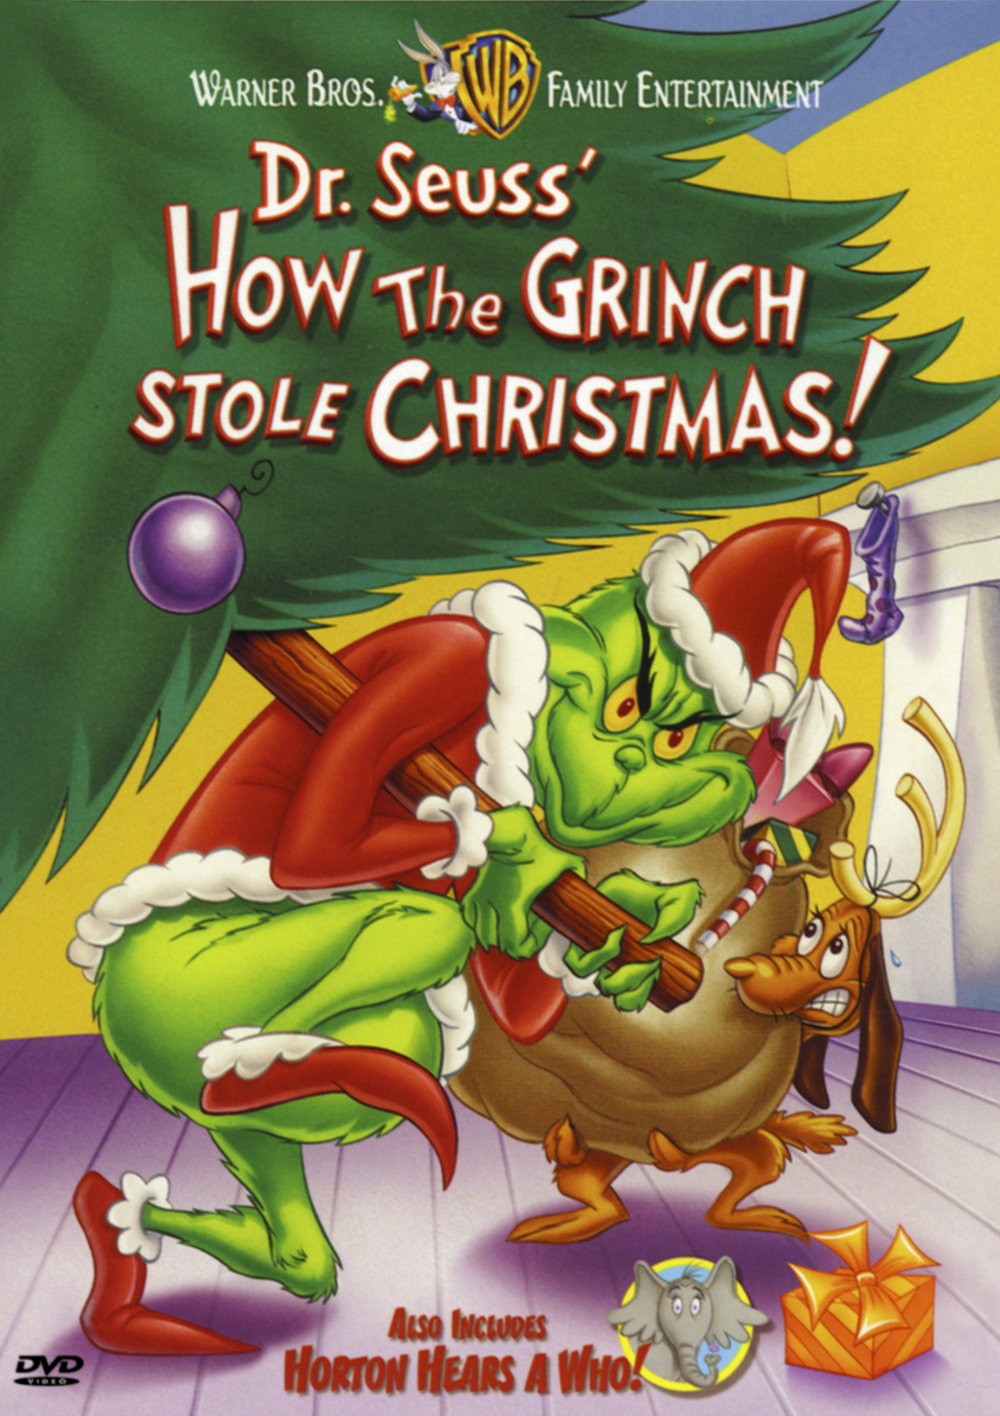 115How_The_Grinch_Stole_Christmas.jpg